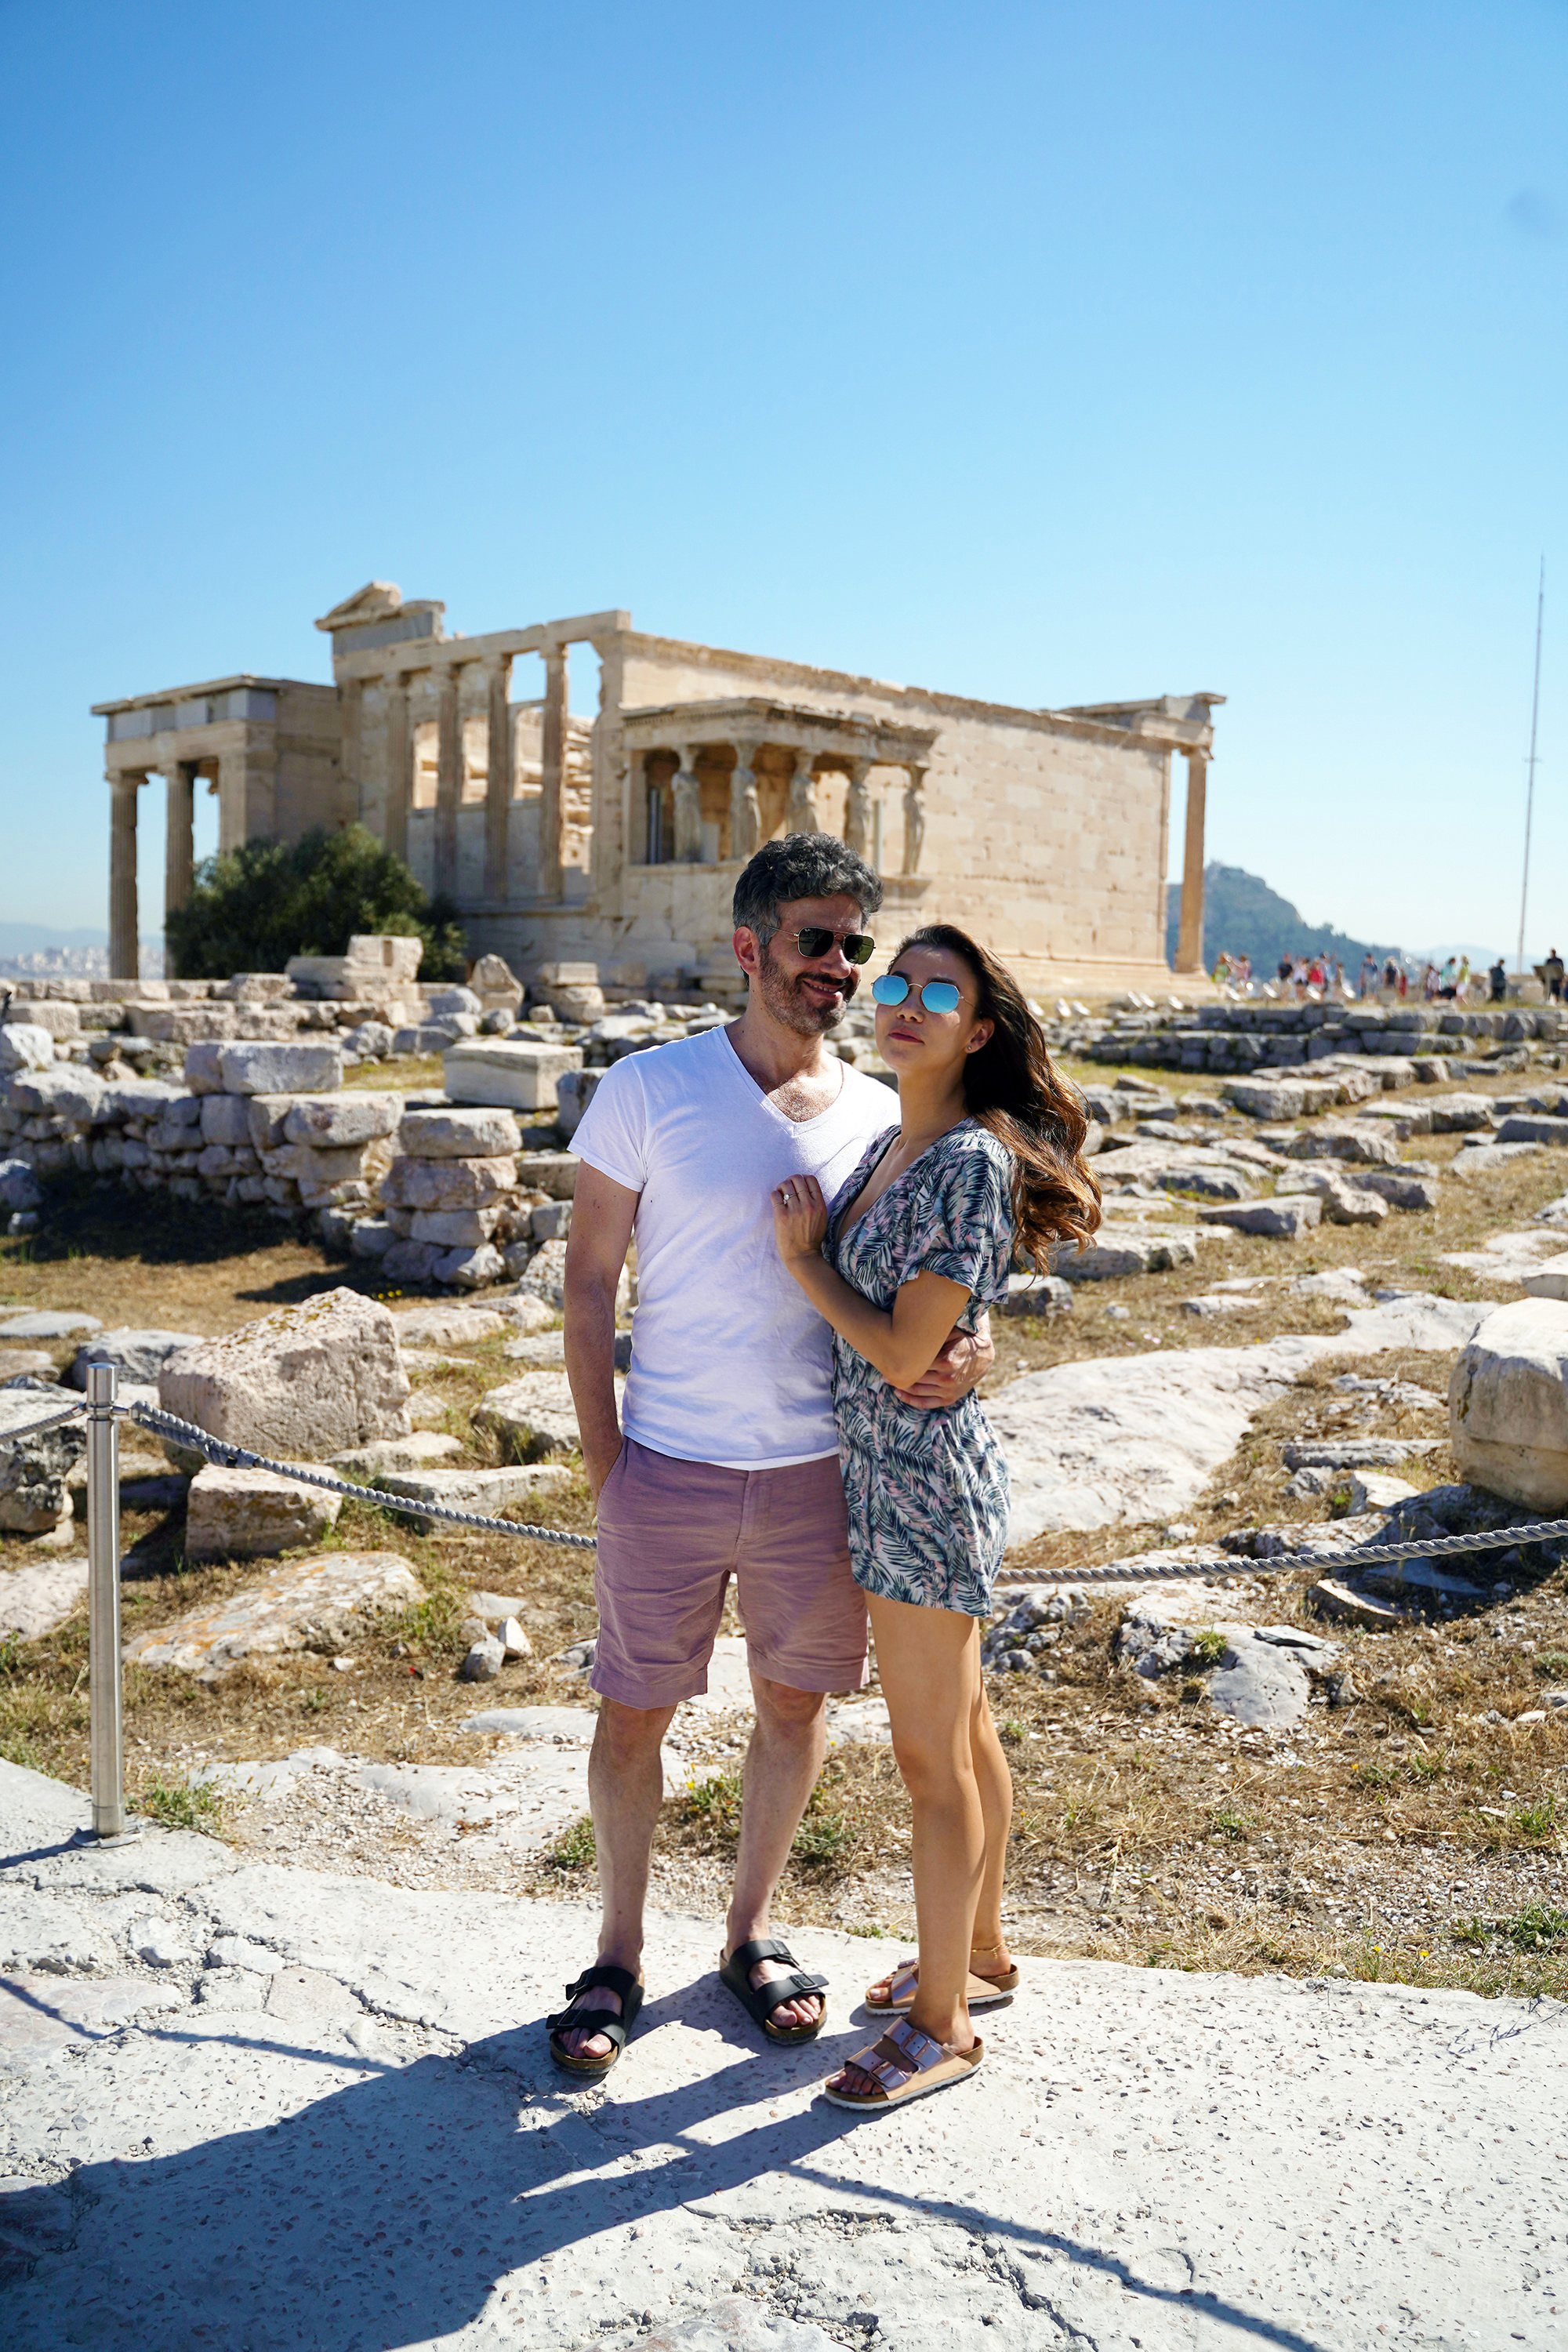 Requisite couple photo at the Temple of Athena Nike